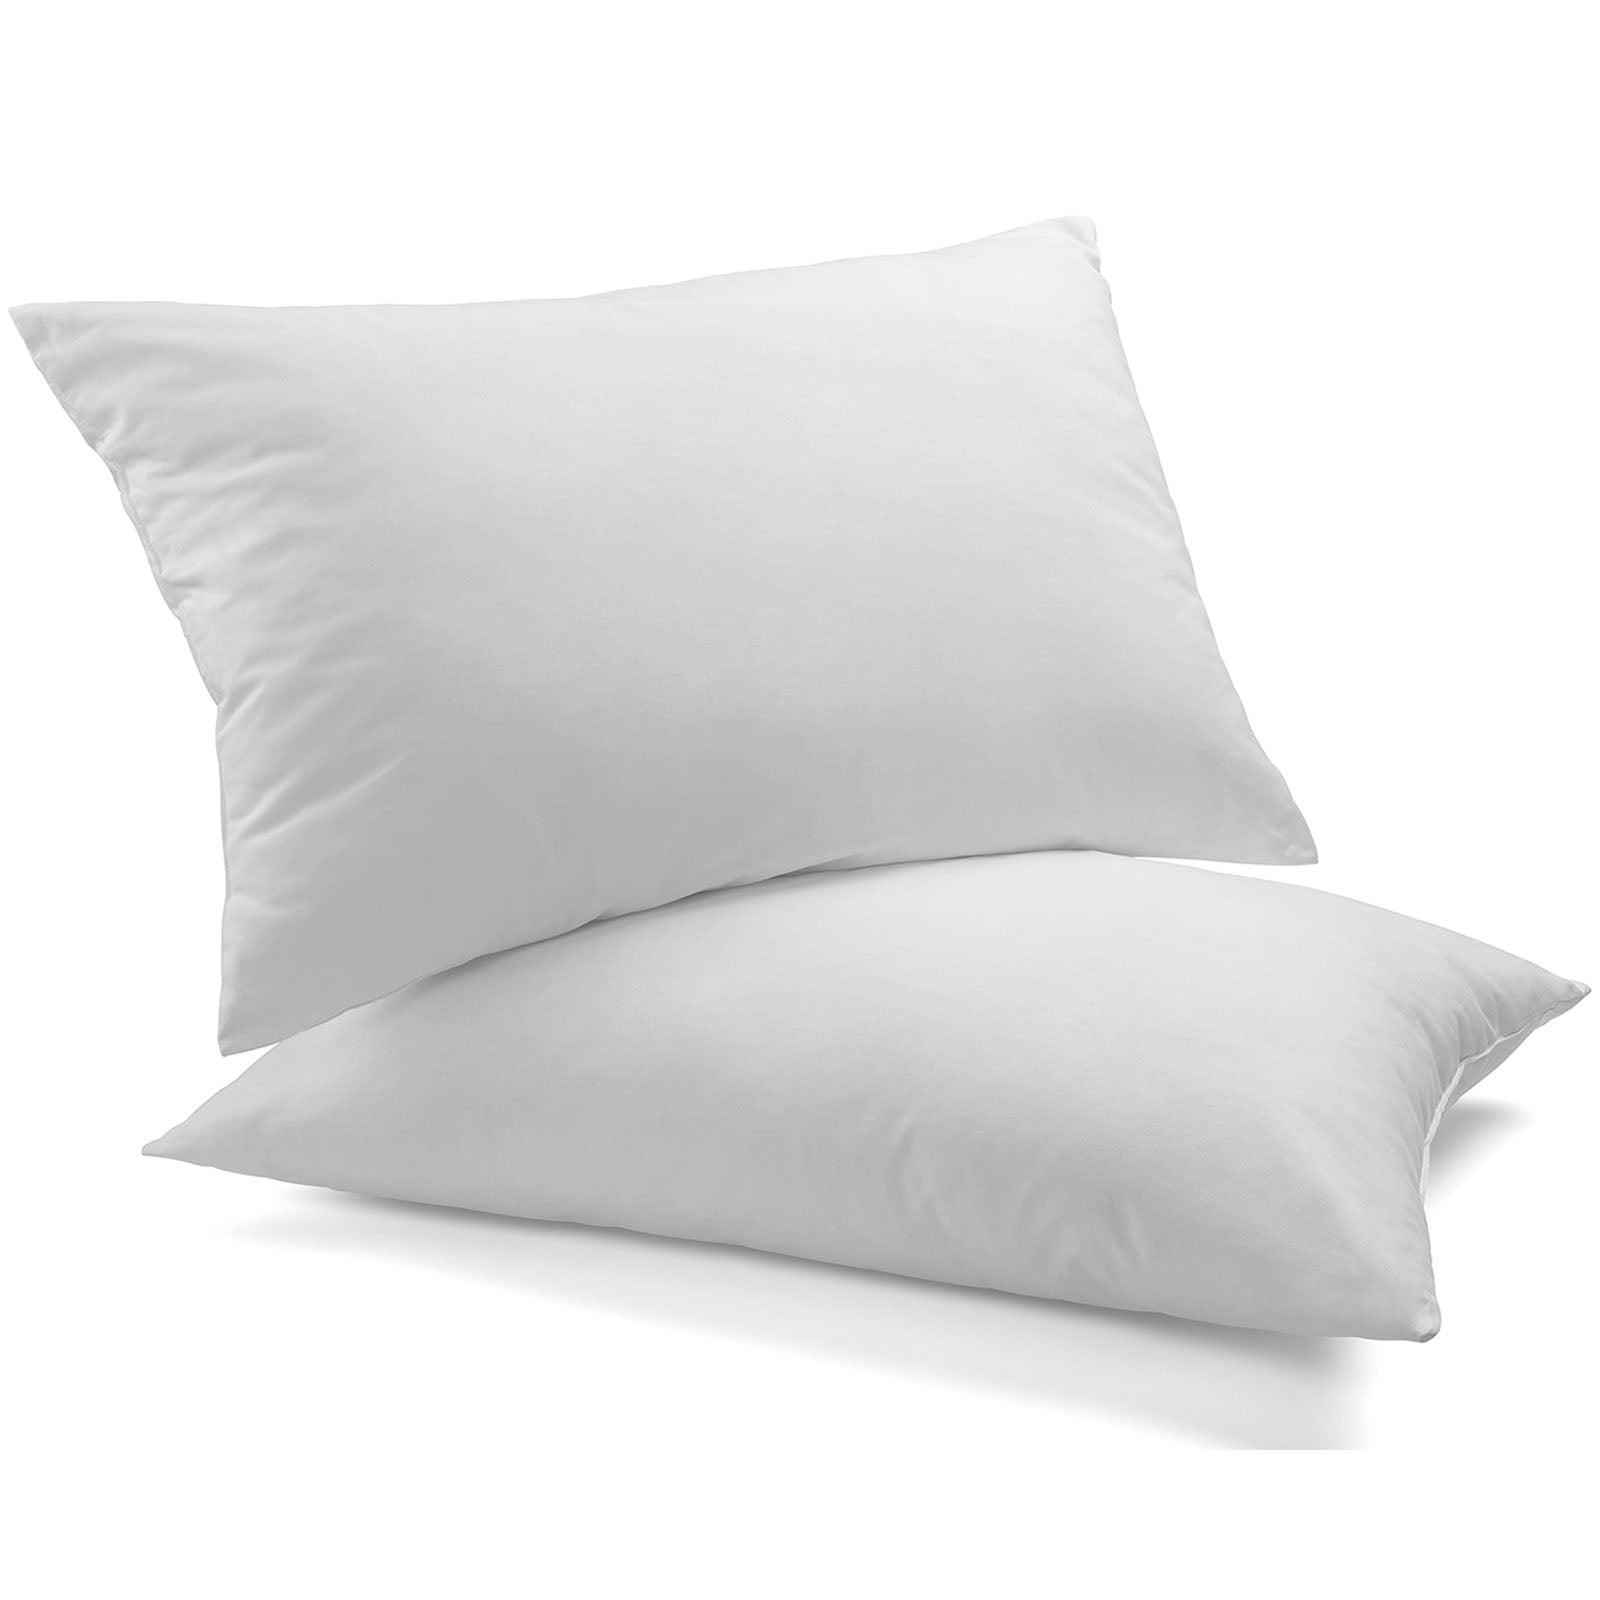 Royal Comfort Goose Down Feather Pillows 1000GSM 100% Cotton Cover - Twin Pack White 50 x 75 cm